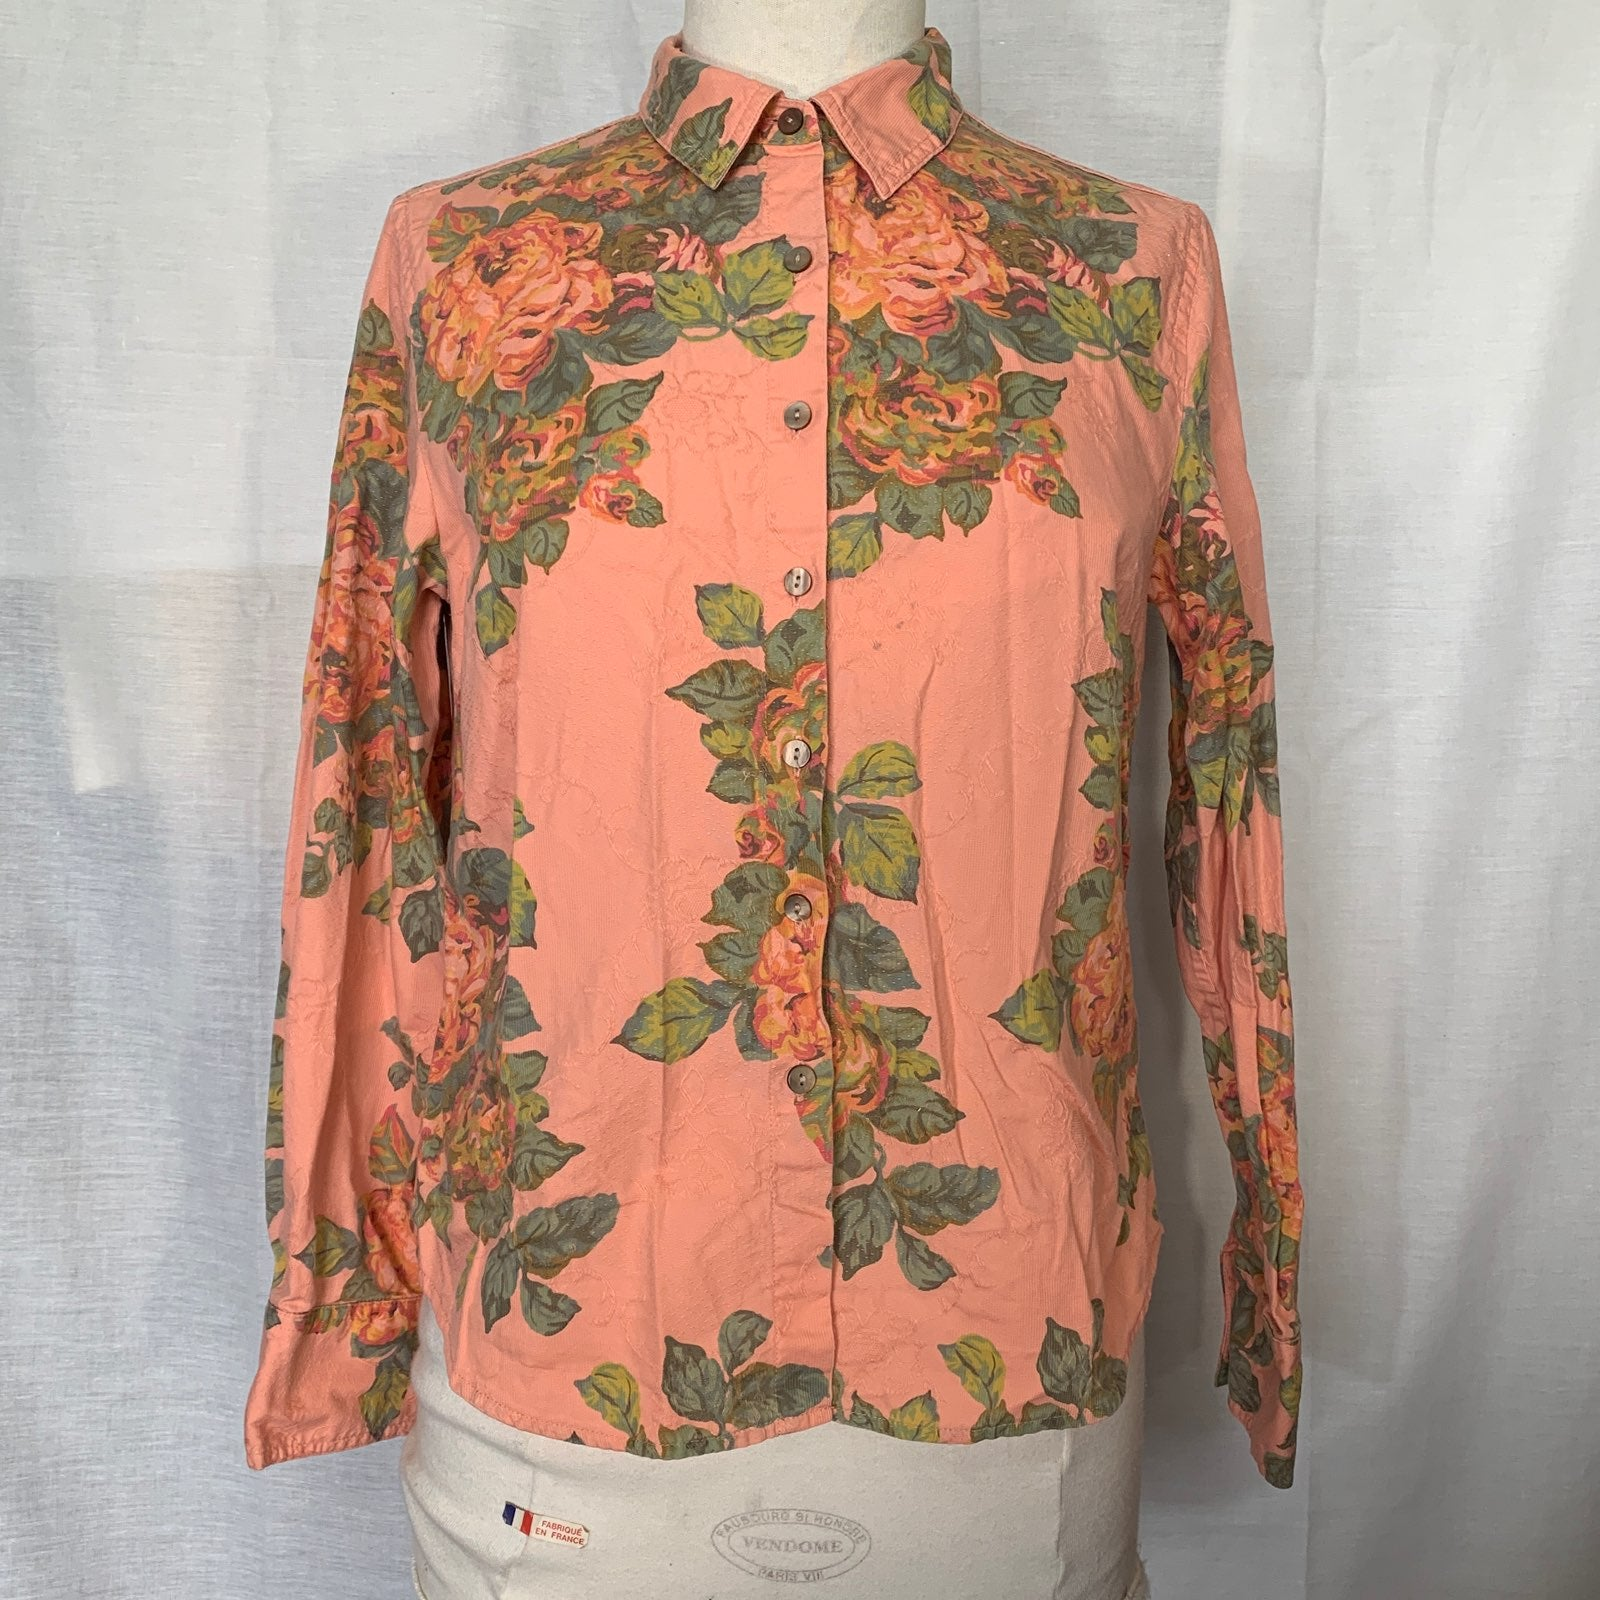 J. Jill Floral Print Embroidered Blouse